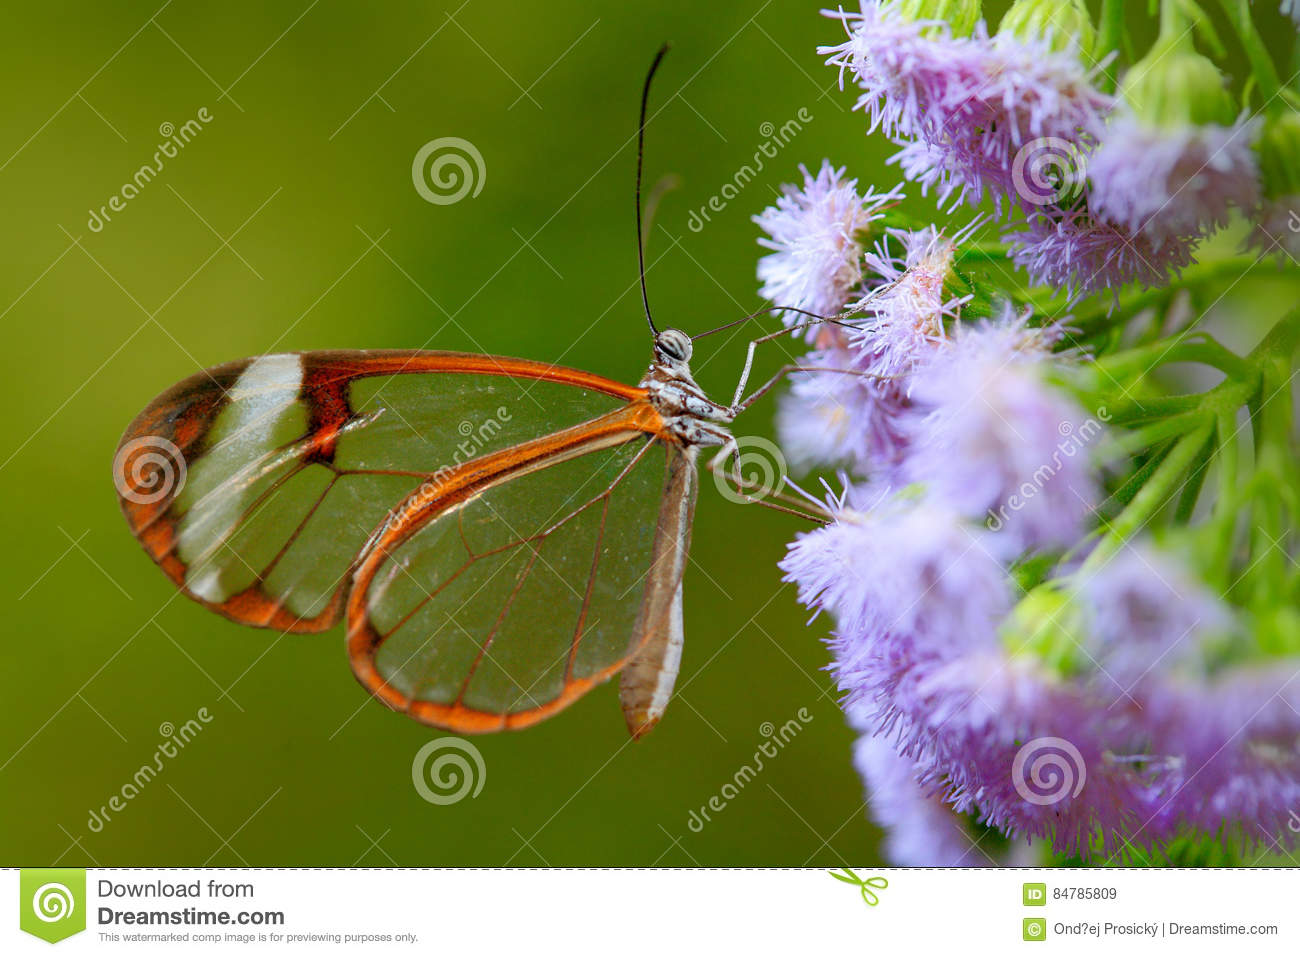 Nero Glasswing, Greta nero, Close-up of transparent glass wing butterfly on green leaves, scene from tropical forest, Belize, rest